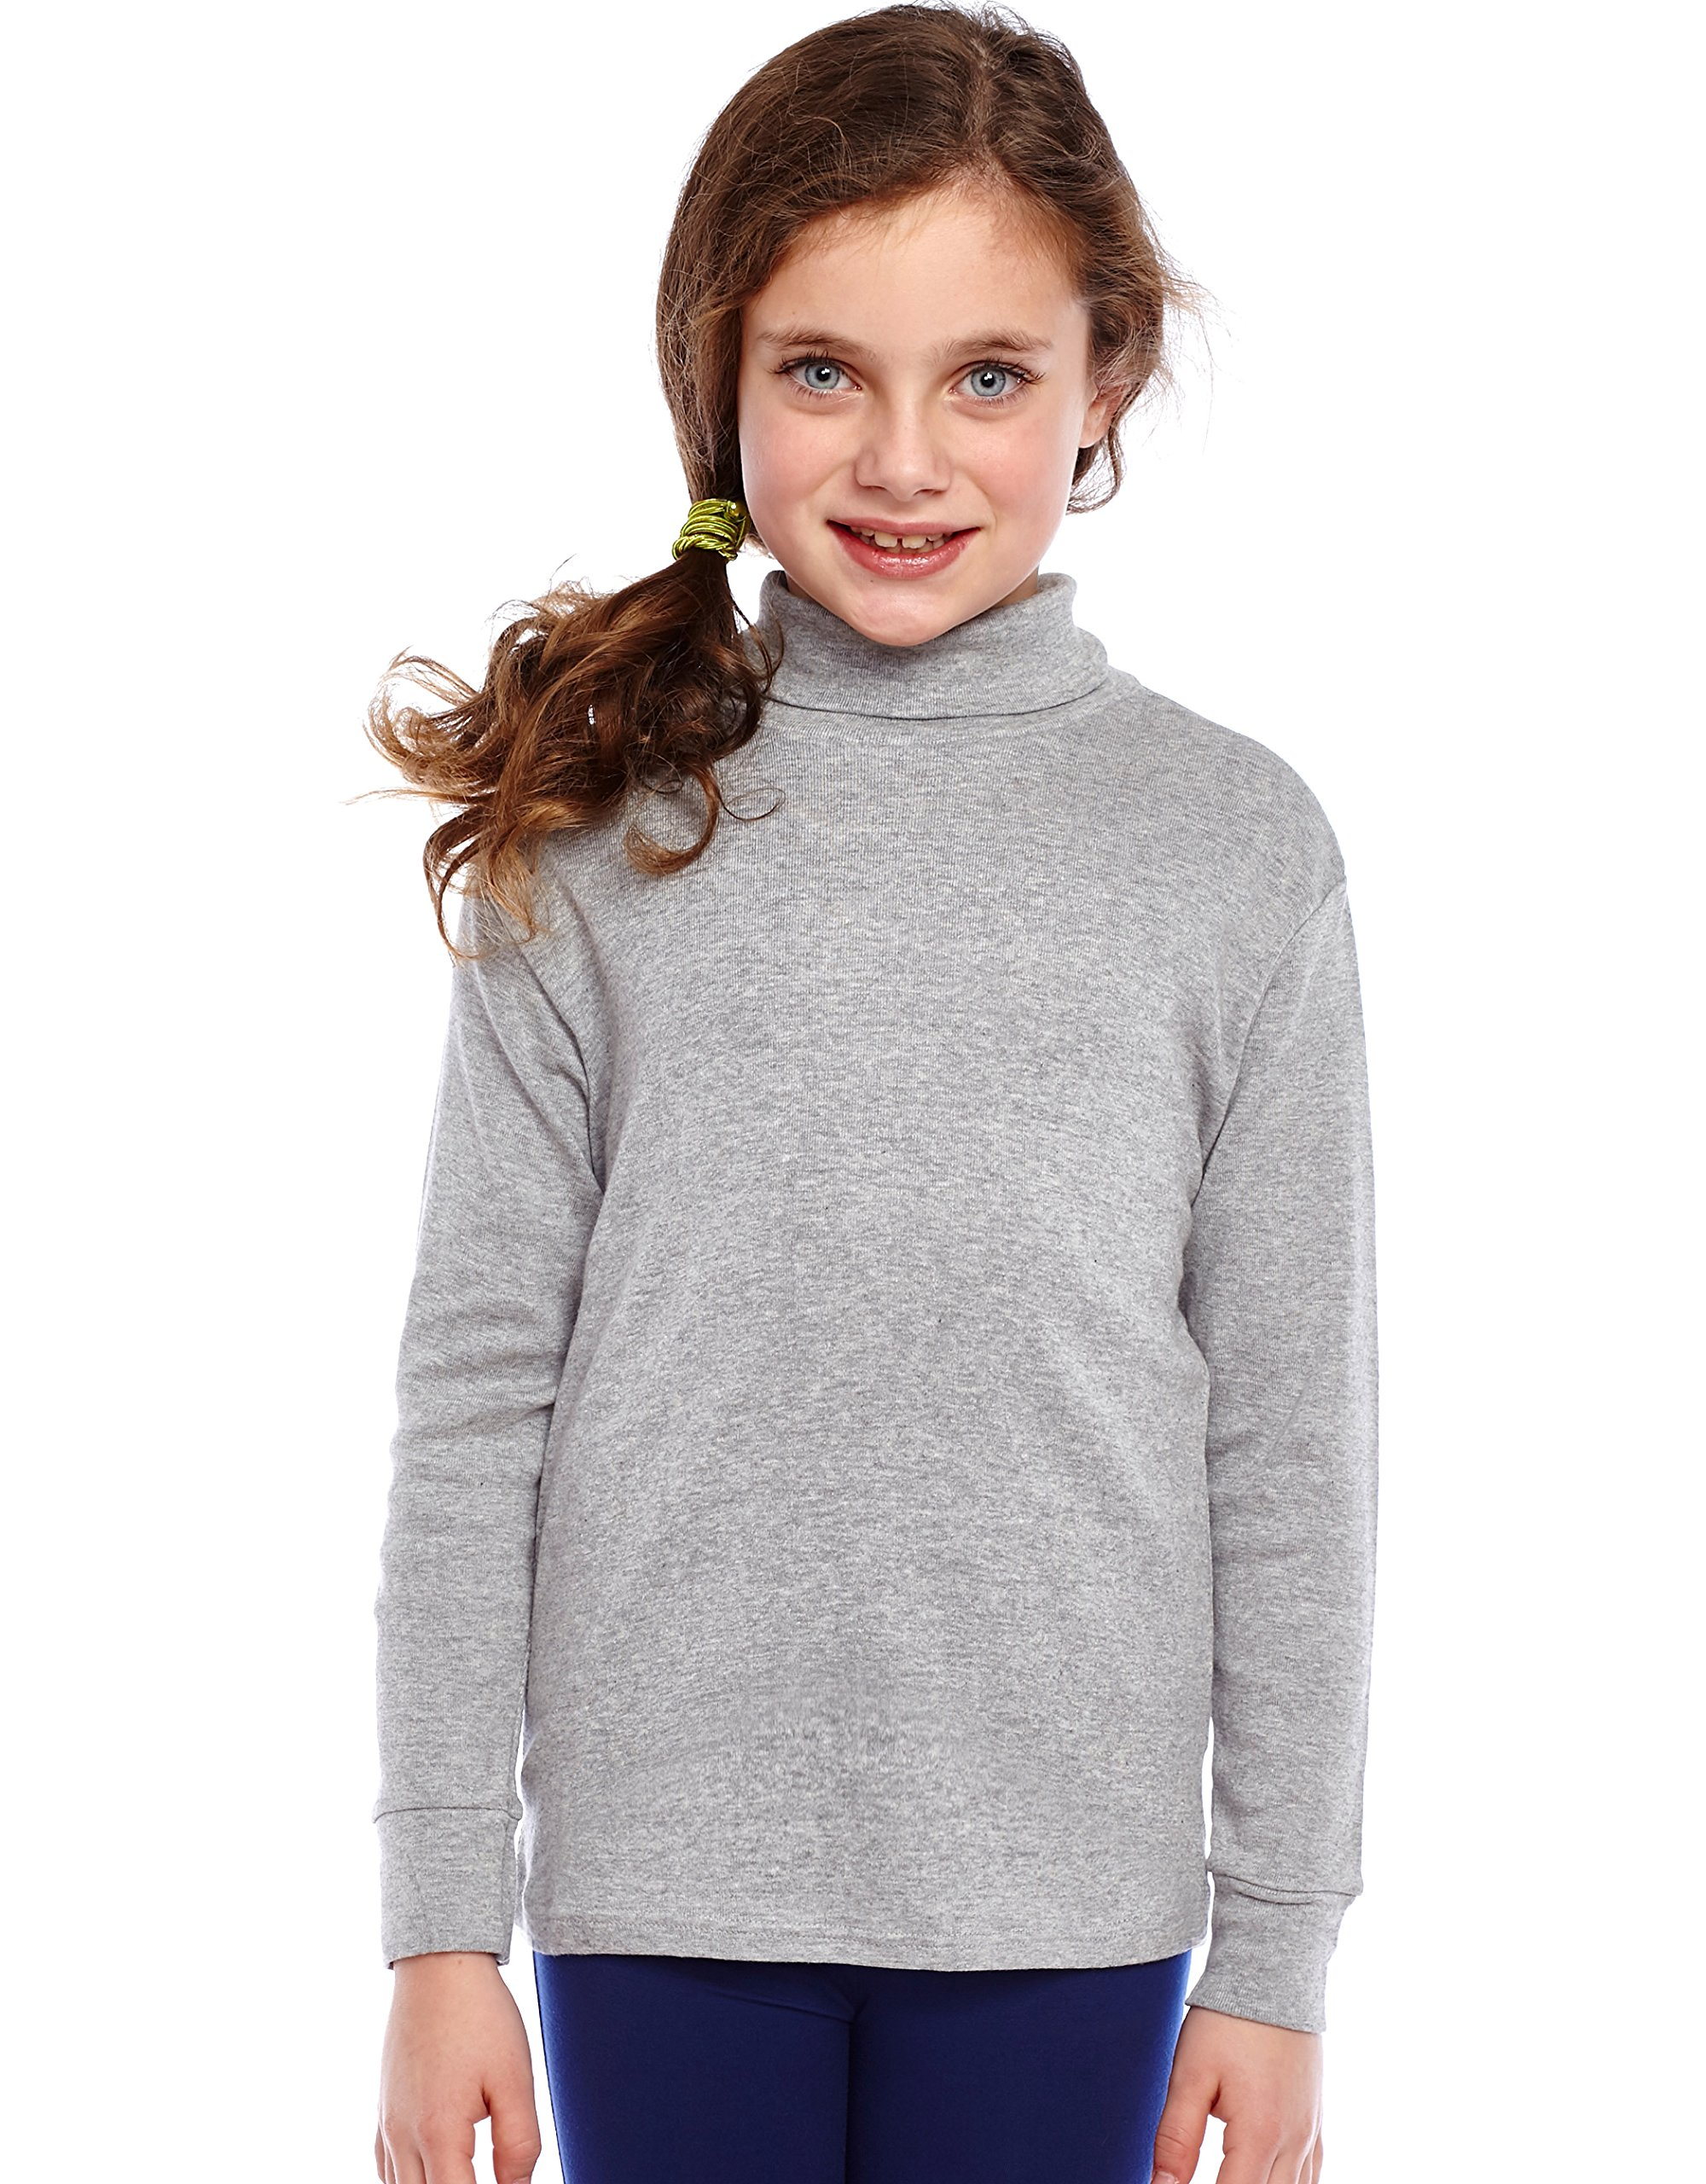 Leveret Solid Turtleneck 100% Cotton (8 Years, Light Grey) by Leveret (Image #3)